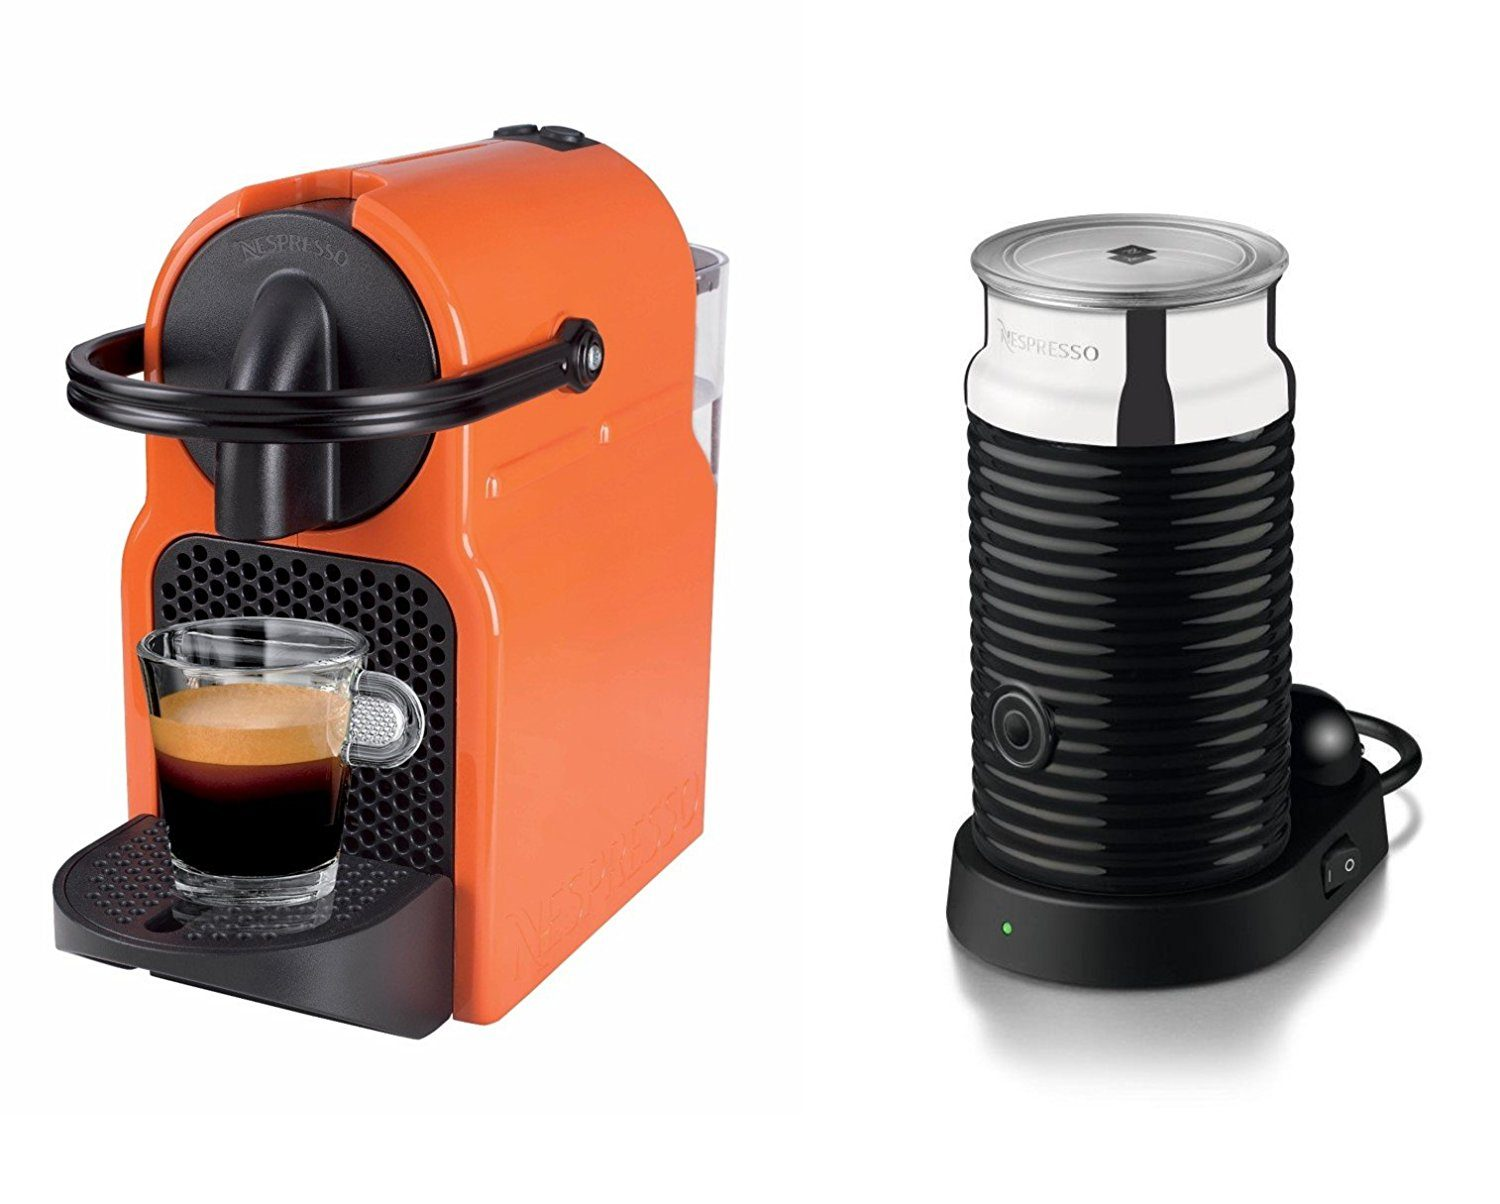 Magimix Nespresso Inissia Summer Sun and Aeroccino Coffee Machine